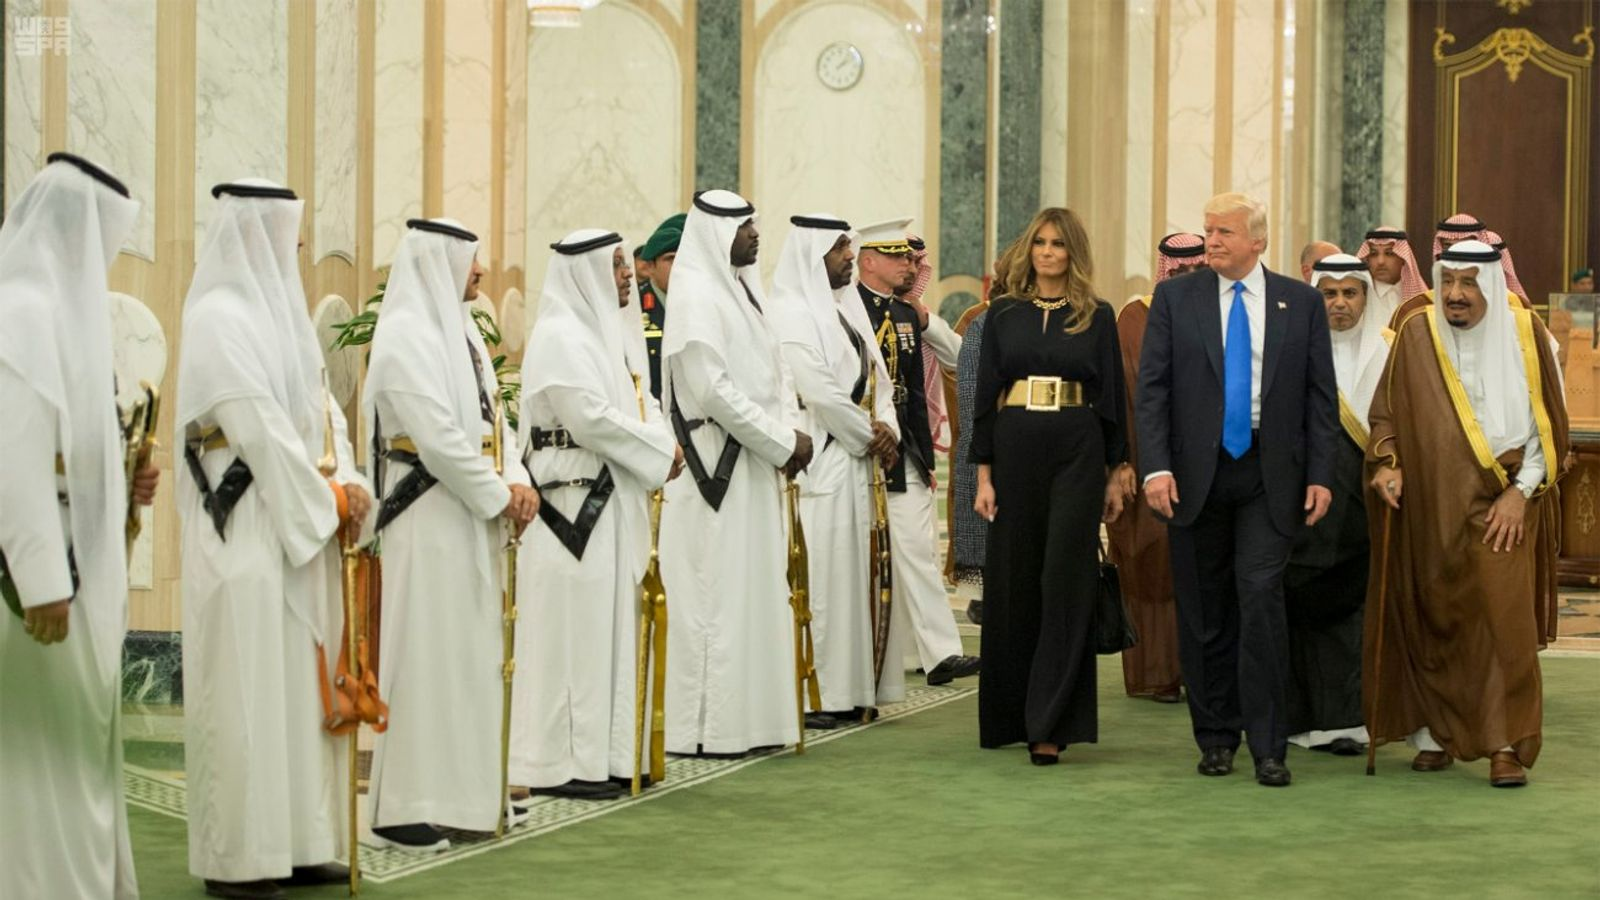 Trump's flight to Tel Aviv first between Saudi Arabia and Israel